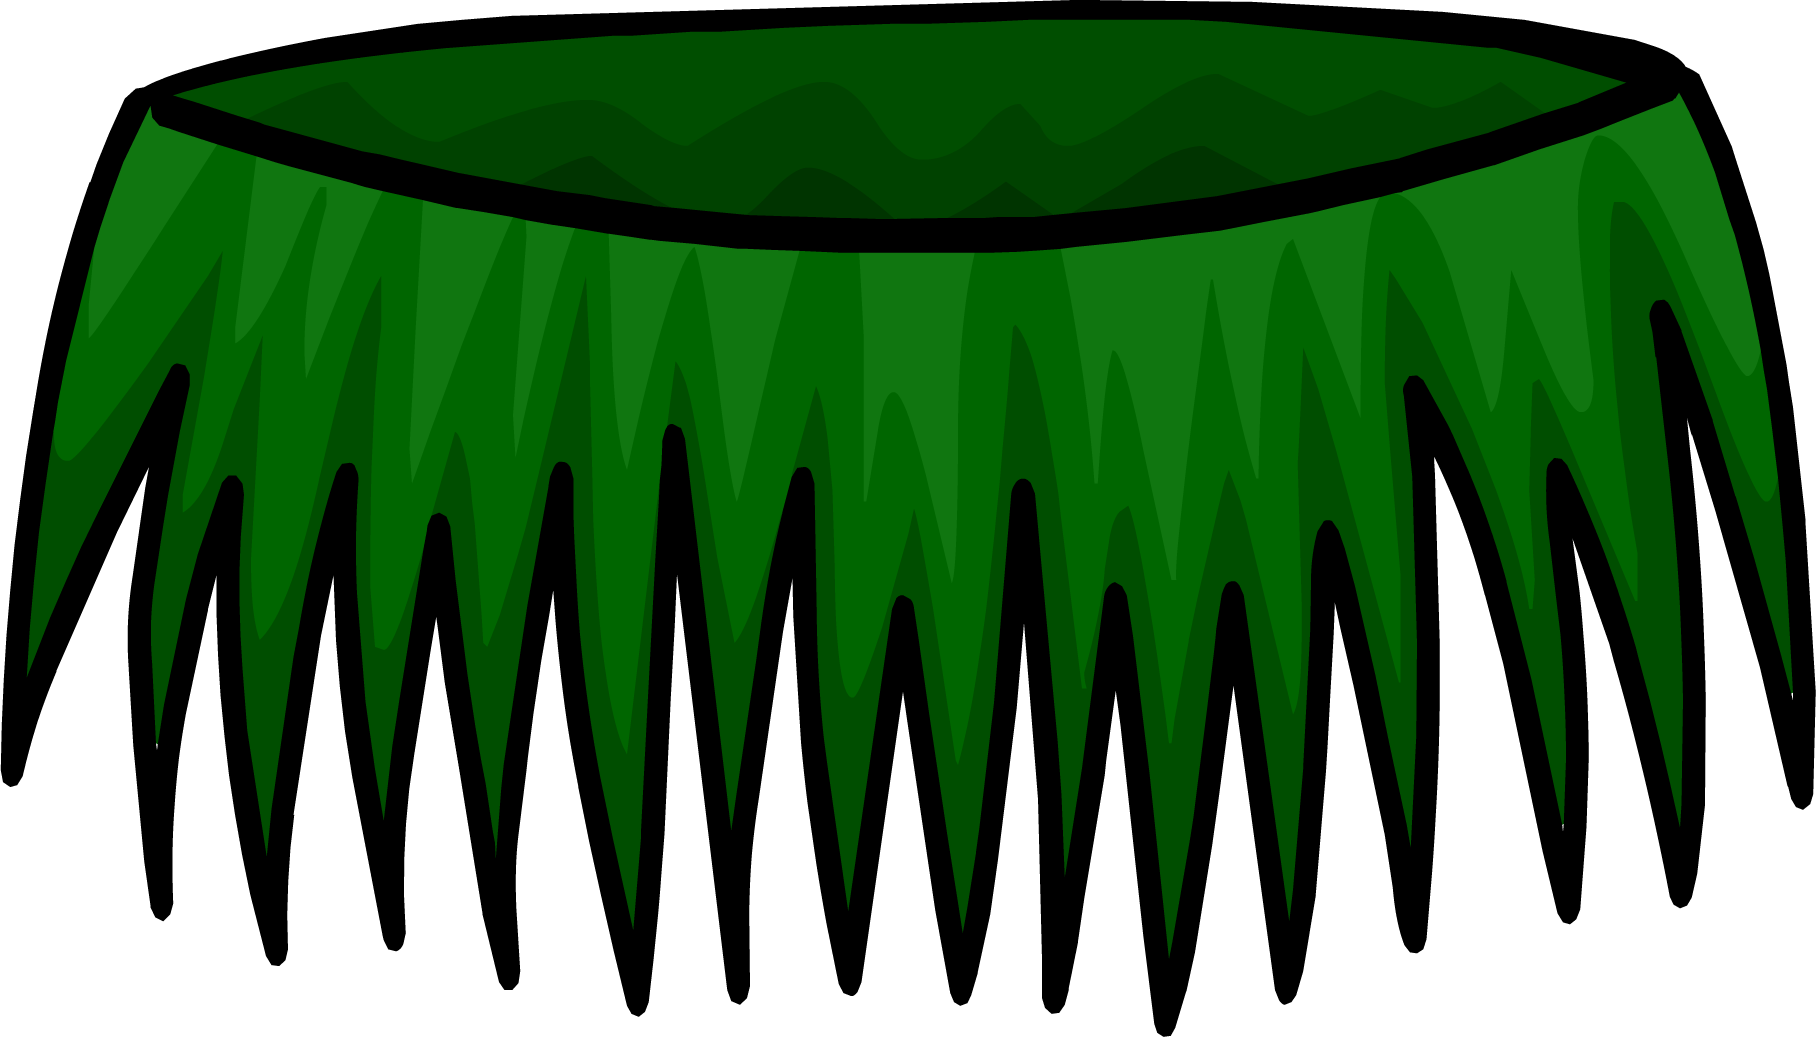 Grass skirt png. Image clothing icon id